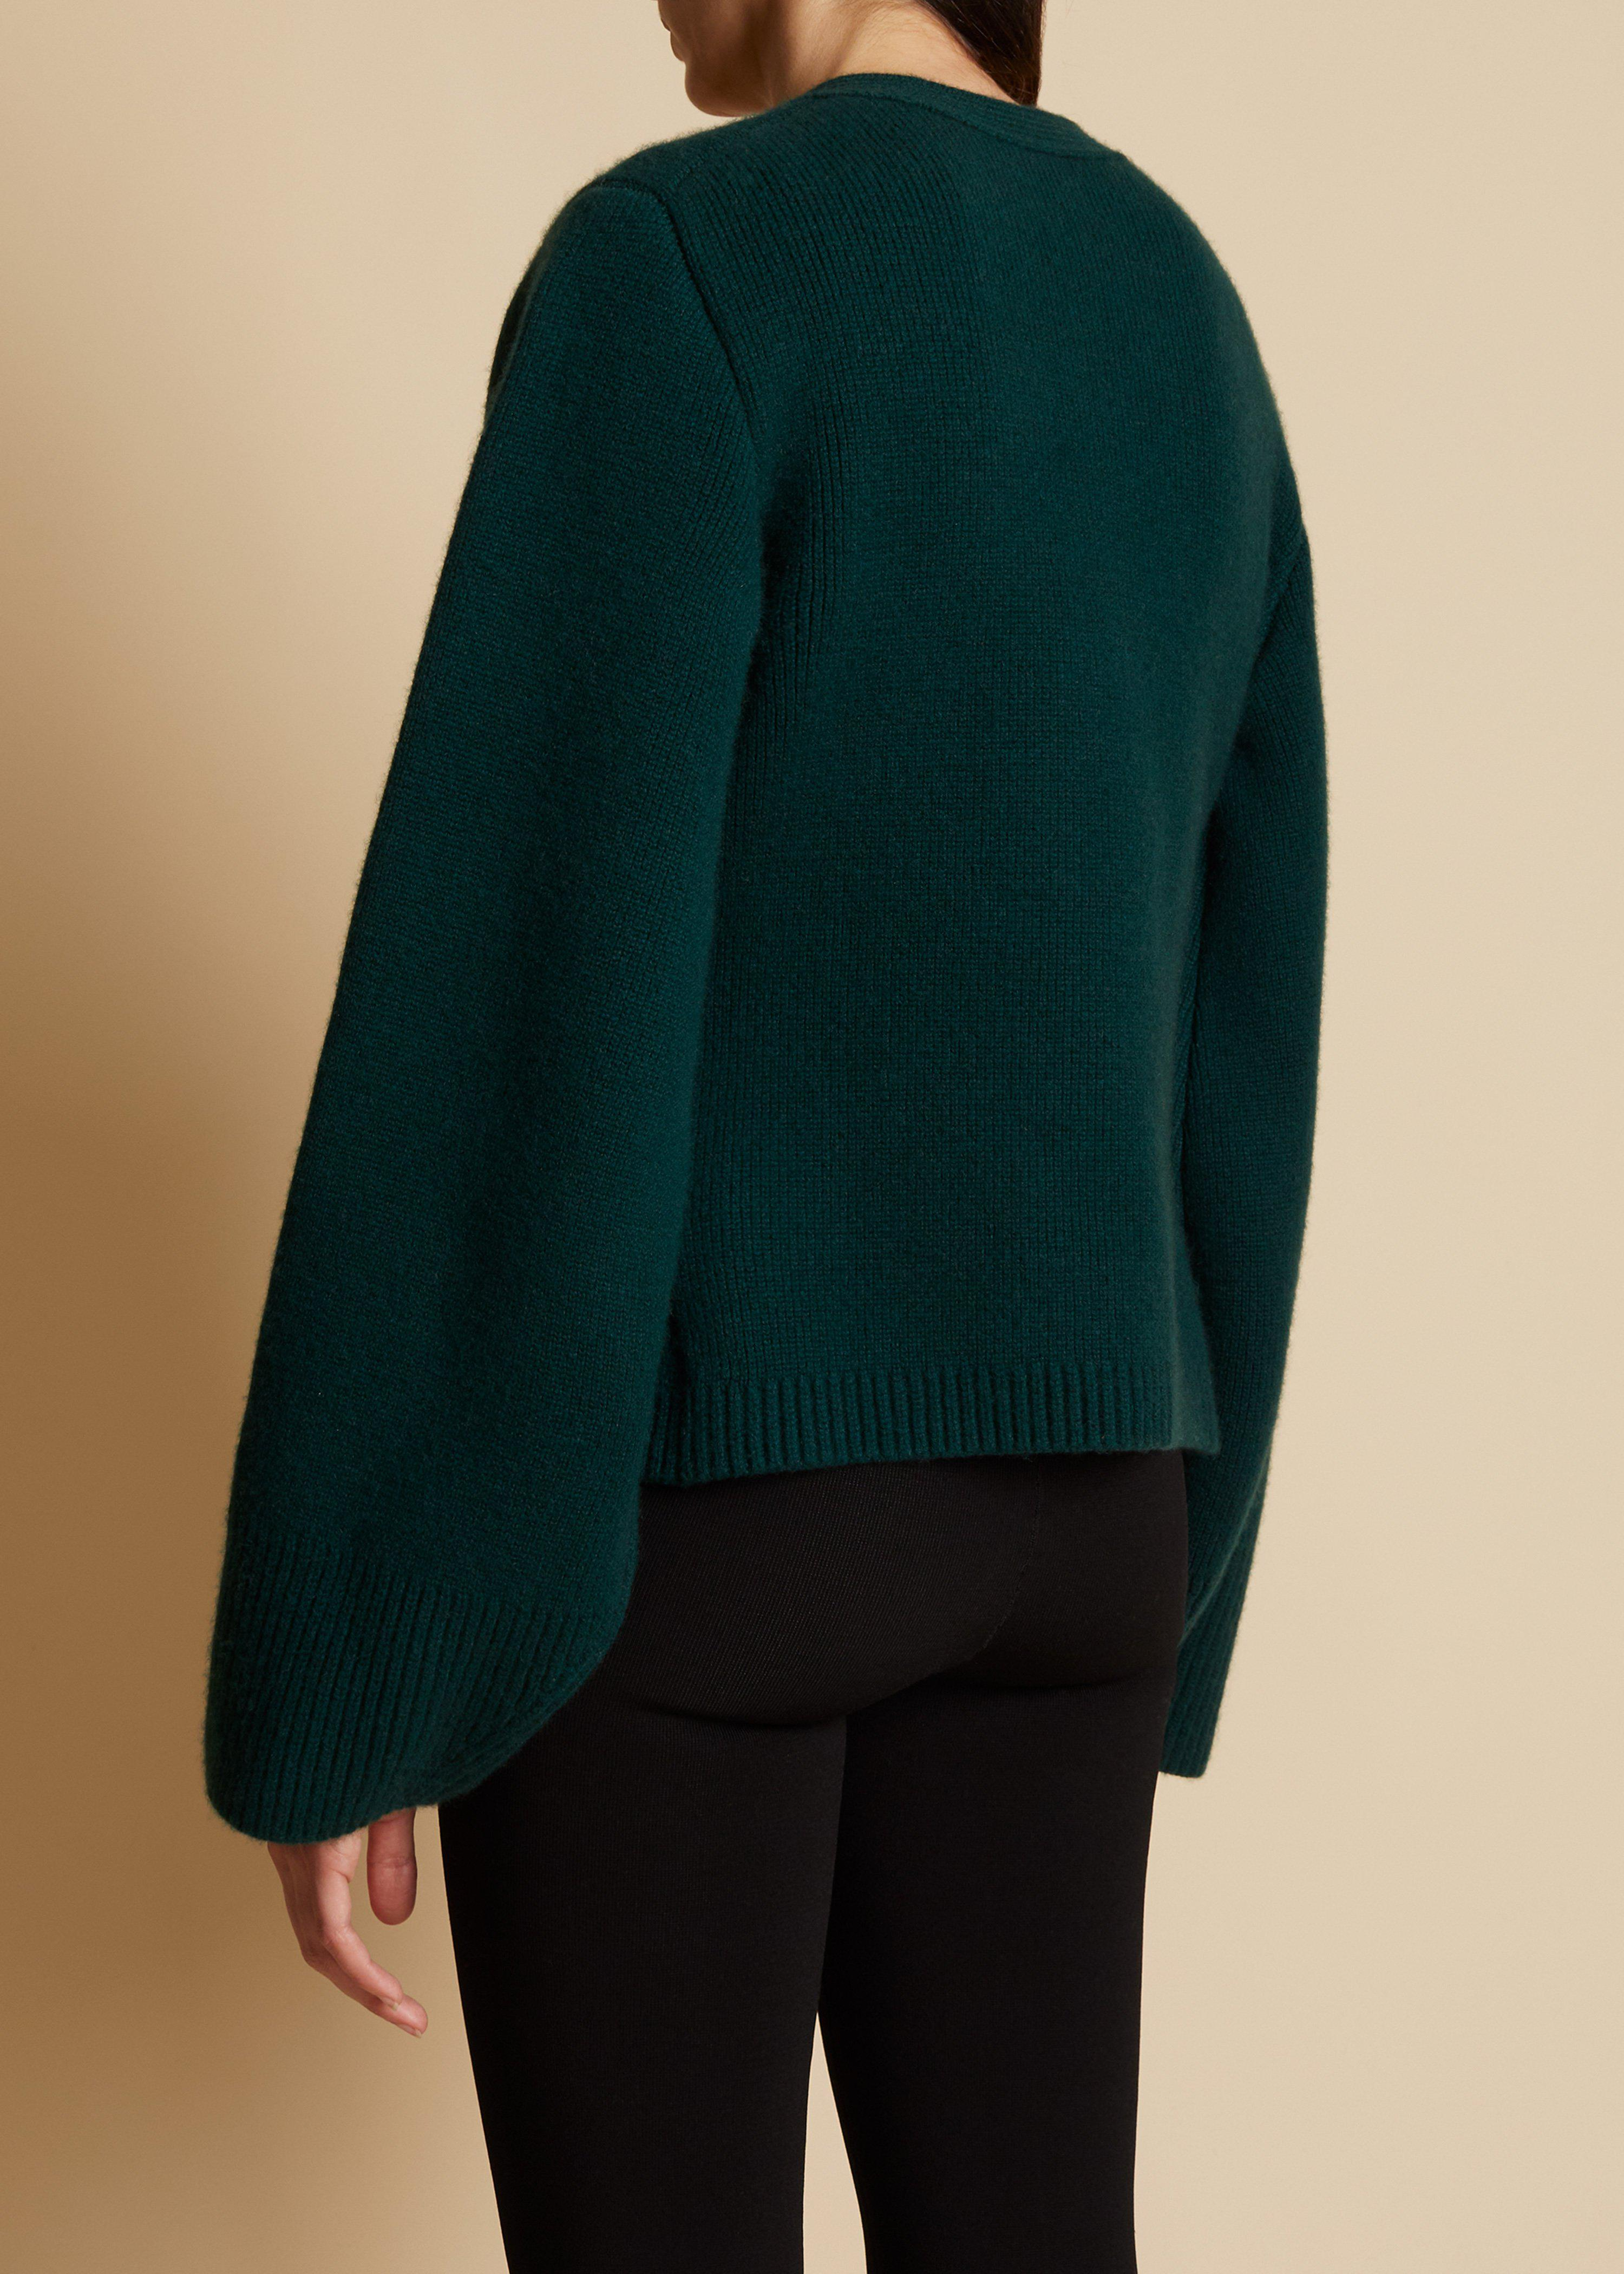 The Scarlet Cardigan in Evergreen 2